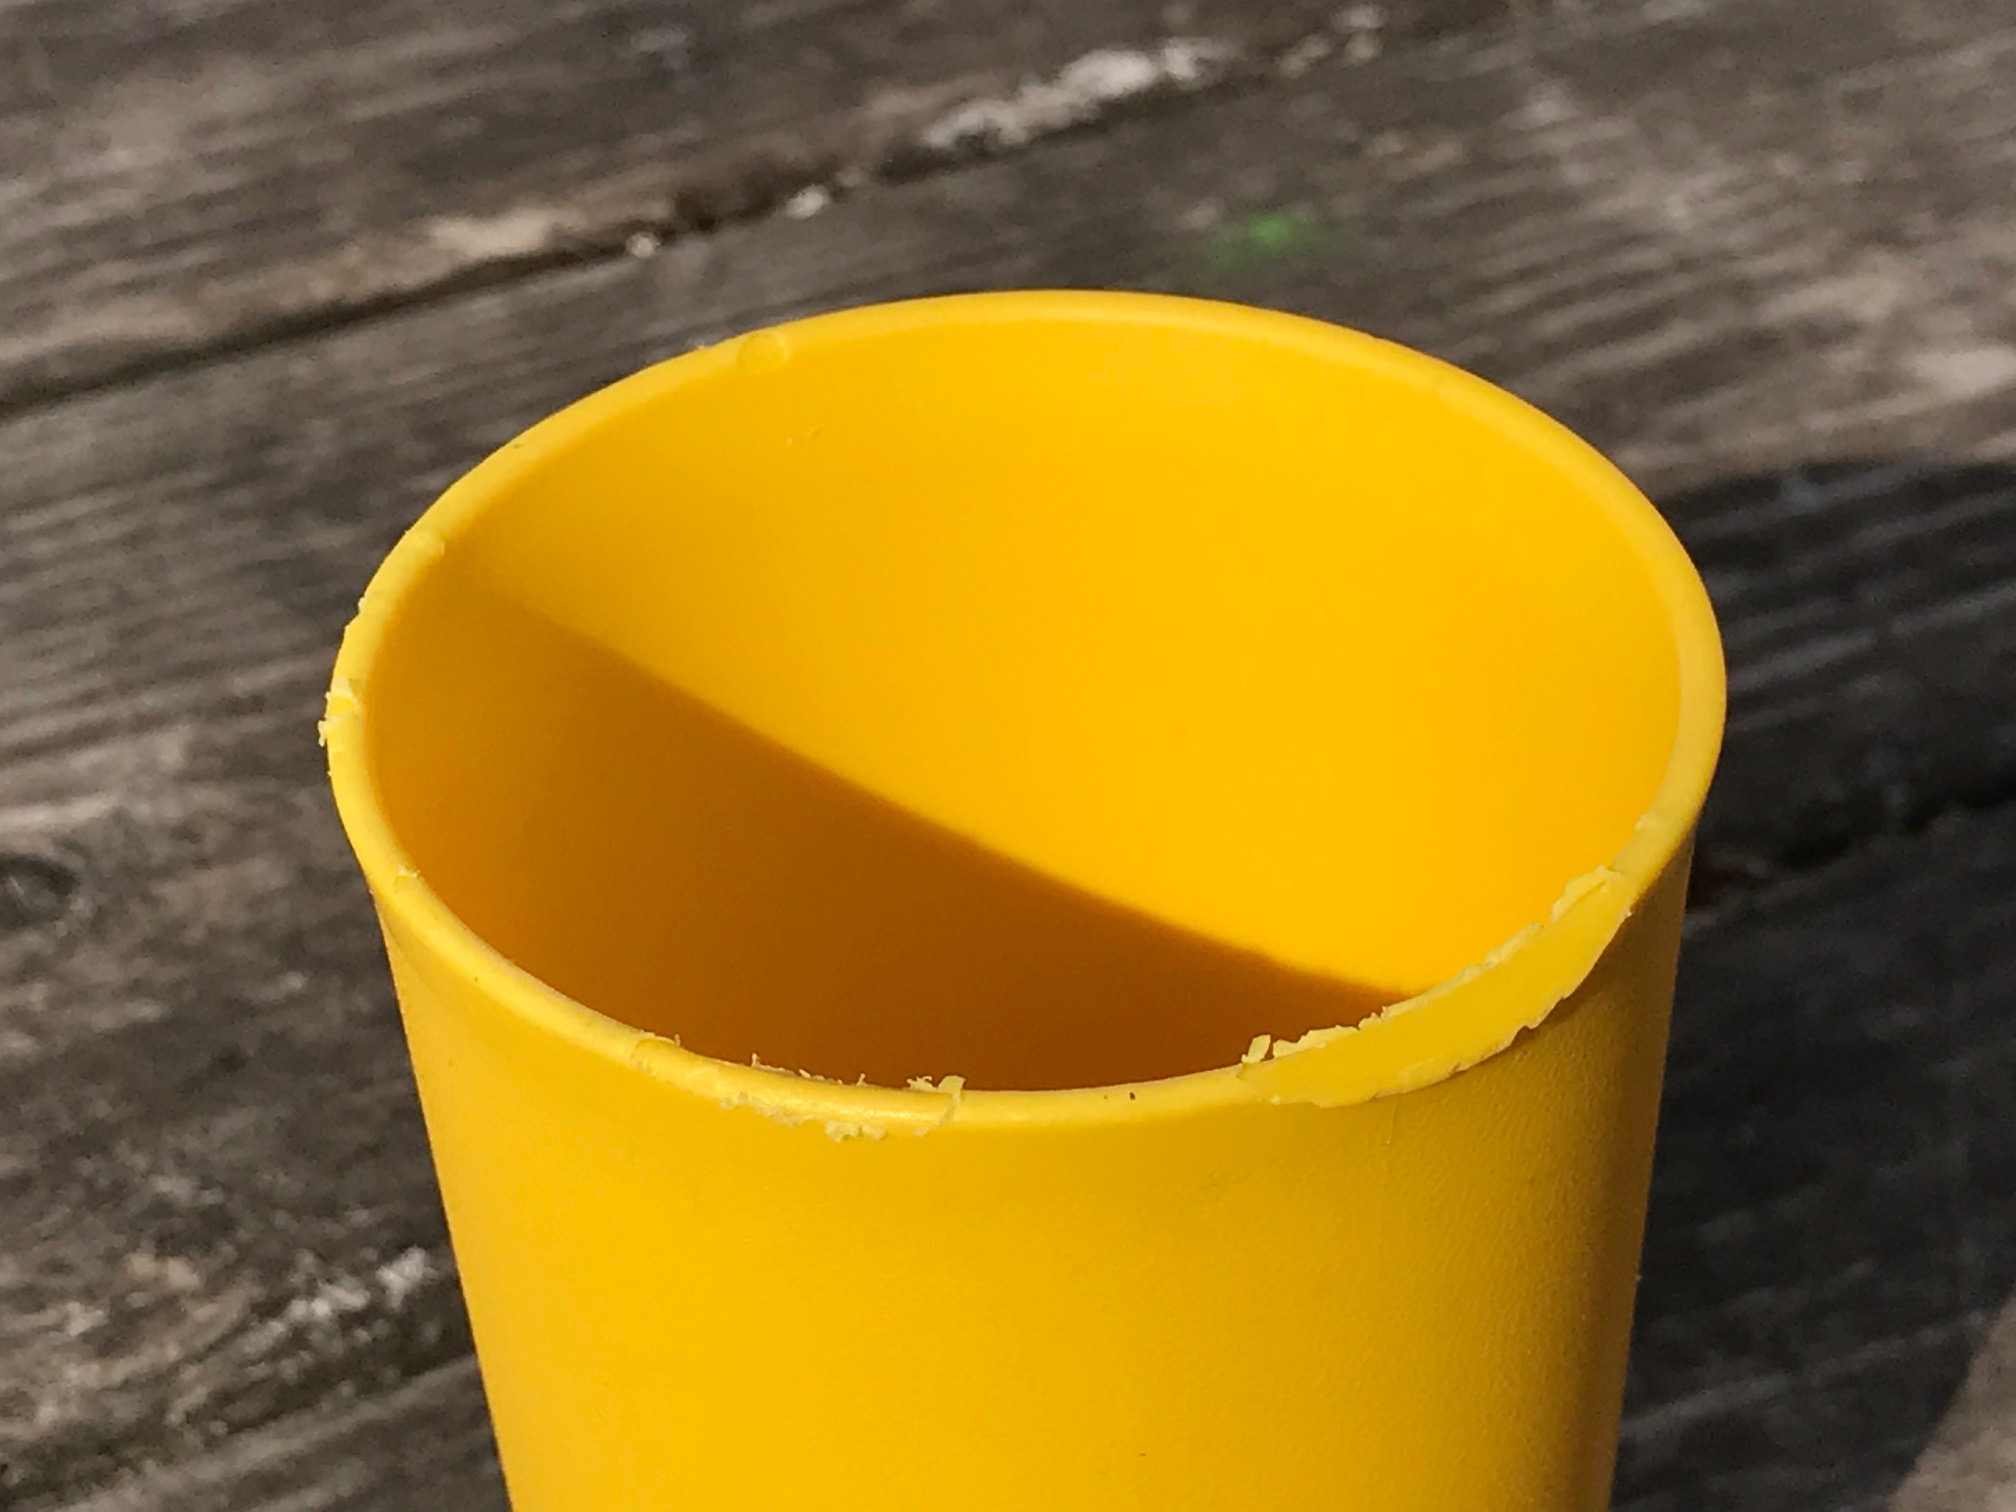 Yellow Tupperware Cup (year unknown): Non-detect for Lead, Mercury, Cadmium and Arsenic.